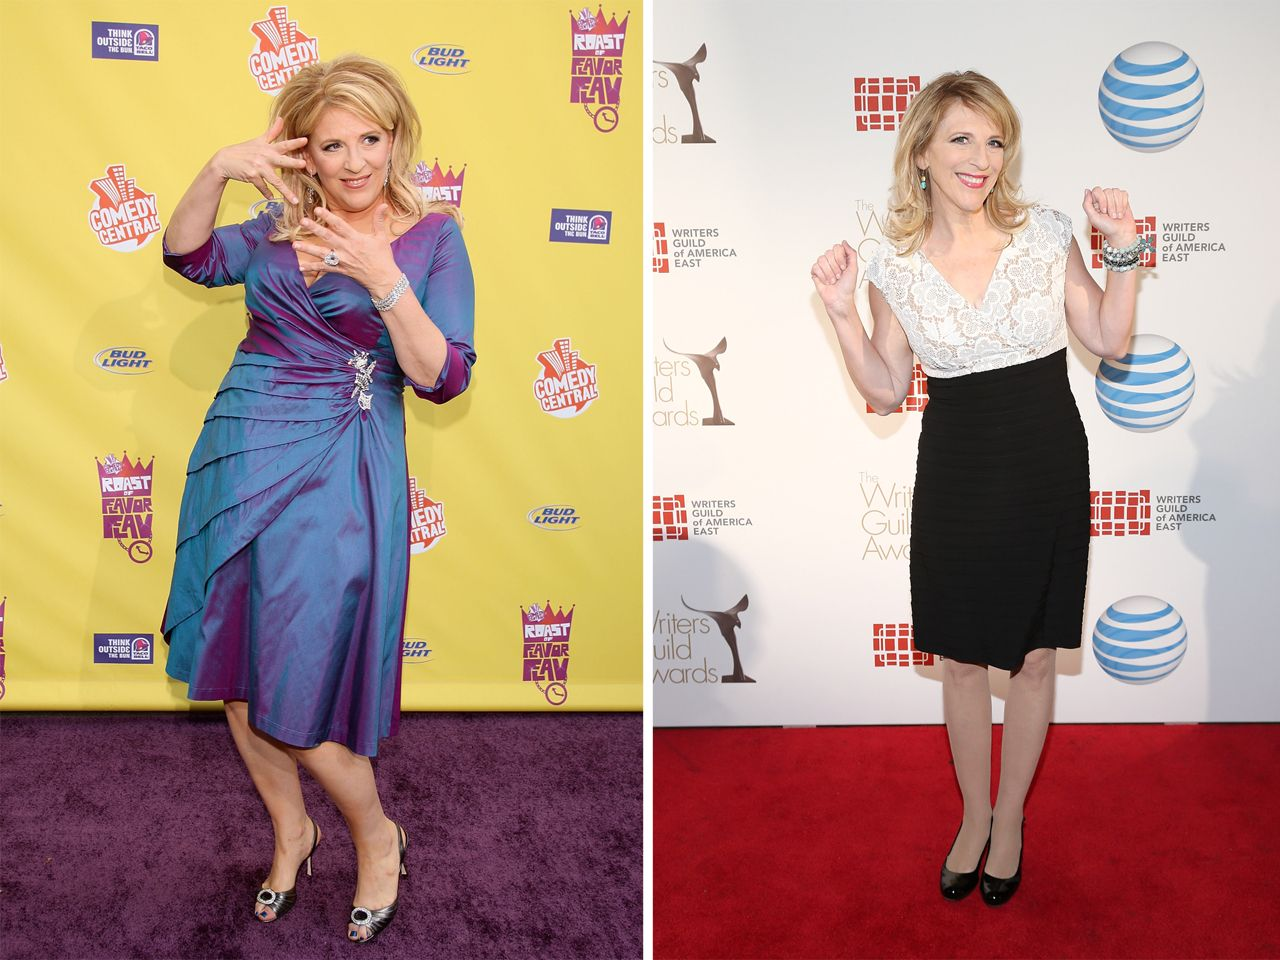 Lisa Lampanelli drops over 100 pounds with weight-loss surgery